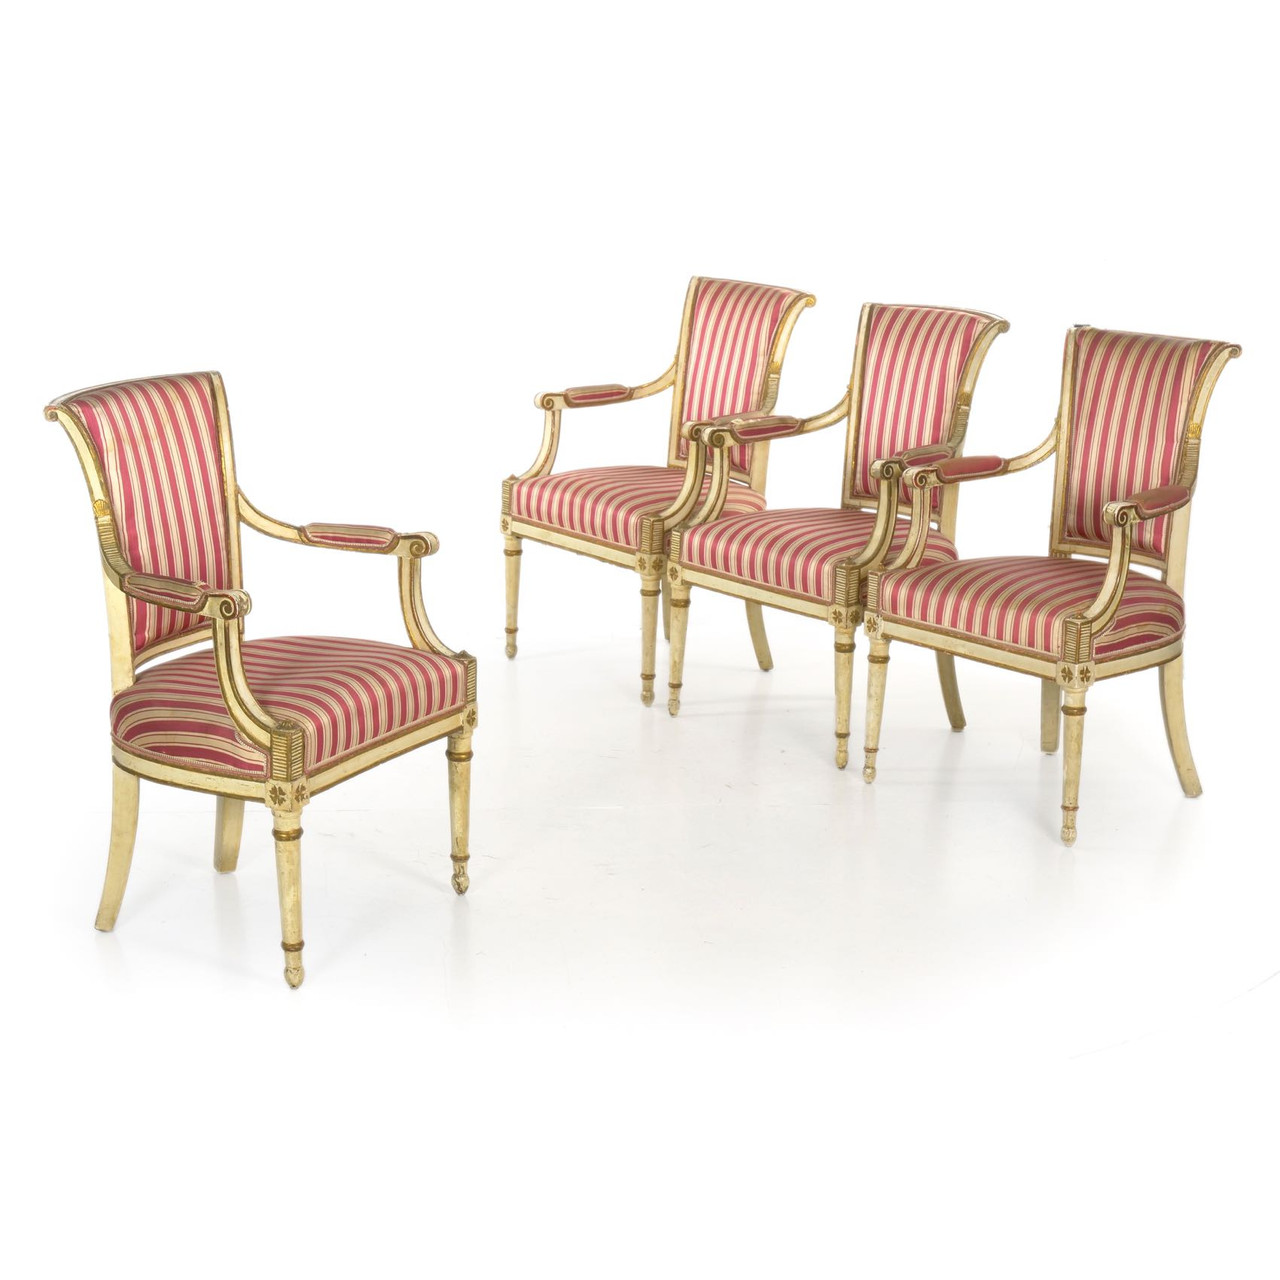 Set Vintage Fauteuils.Set Of Four Directoire Painted Fauteuils Continental 19th Century